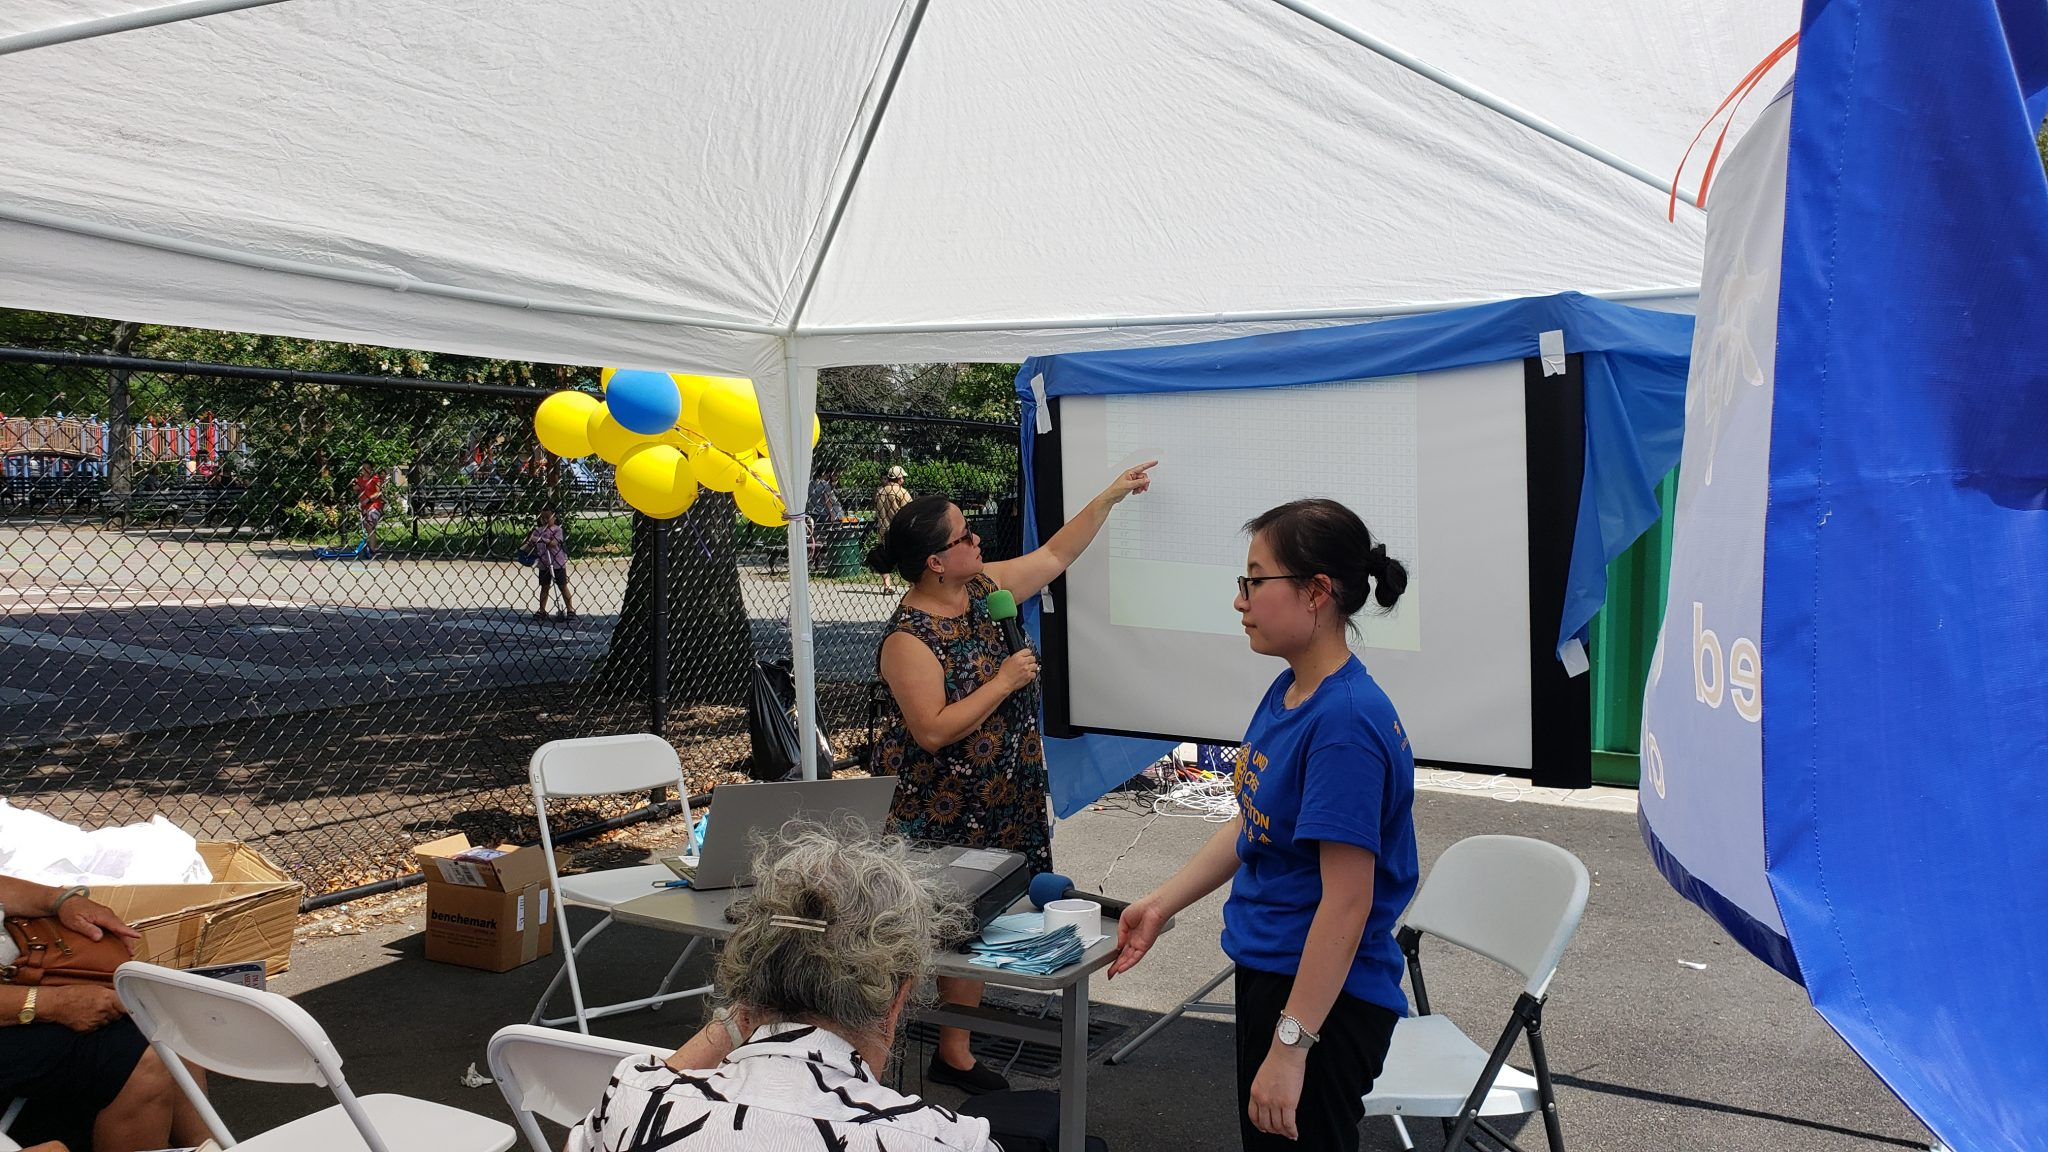 Dr Eng speaks at the 2019 Wellness & Family Day